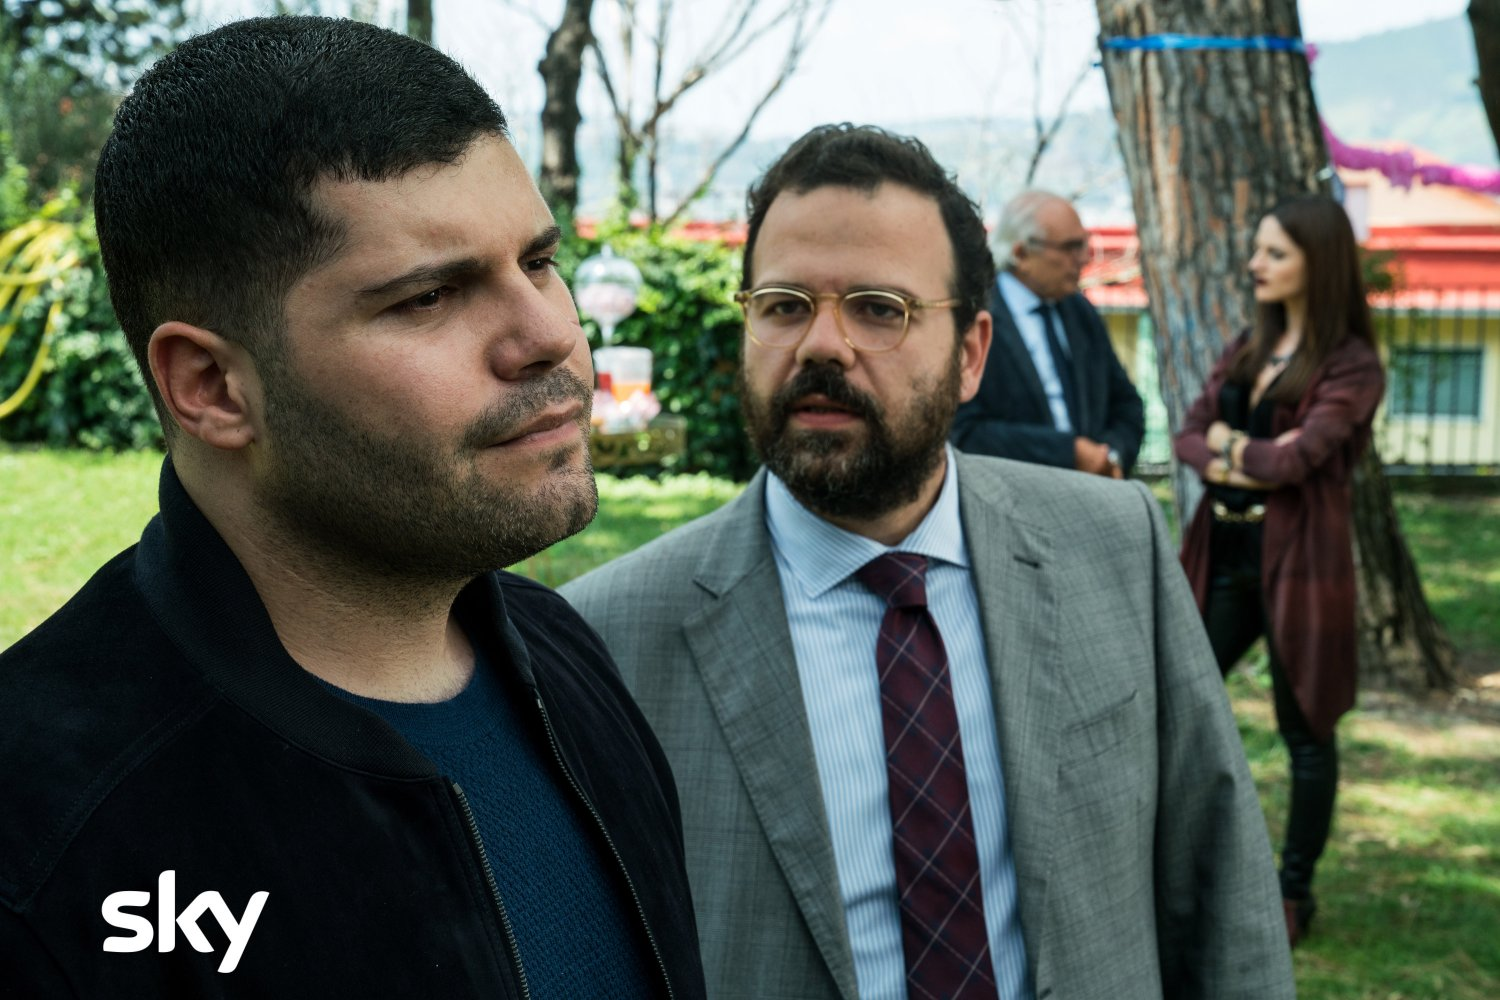 Gomorra Stagione 4, episodi 7 e 8 stasera su Sky Atlantic e Sky Cinema